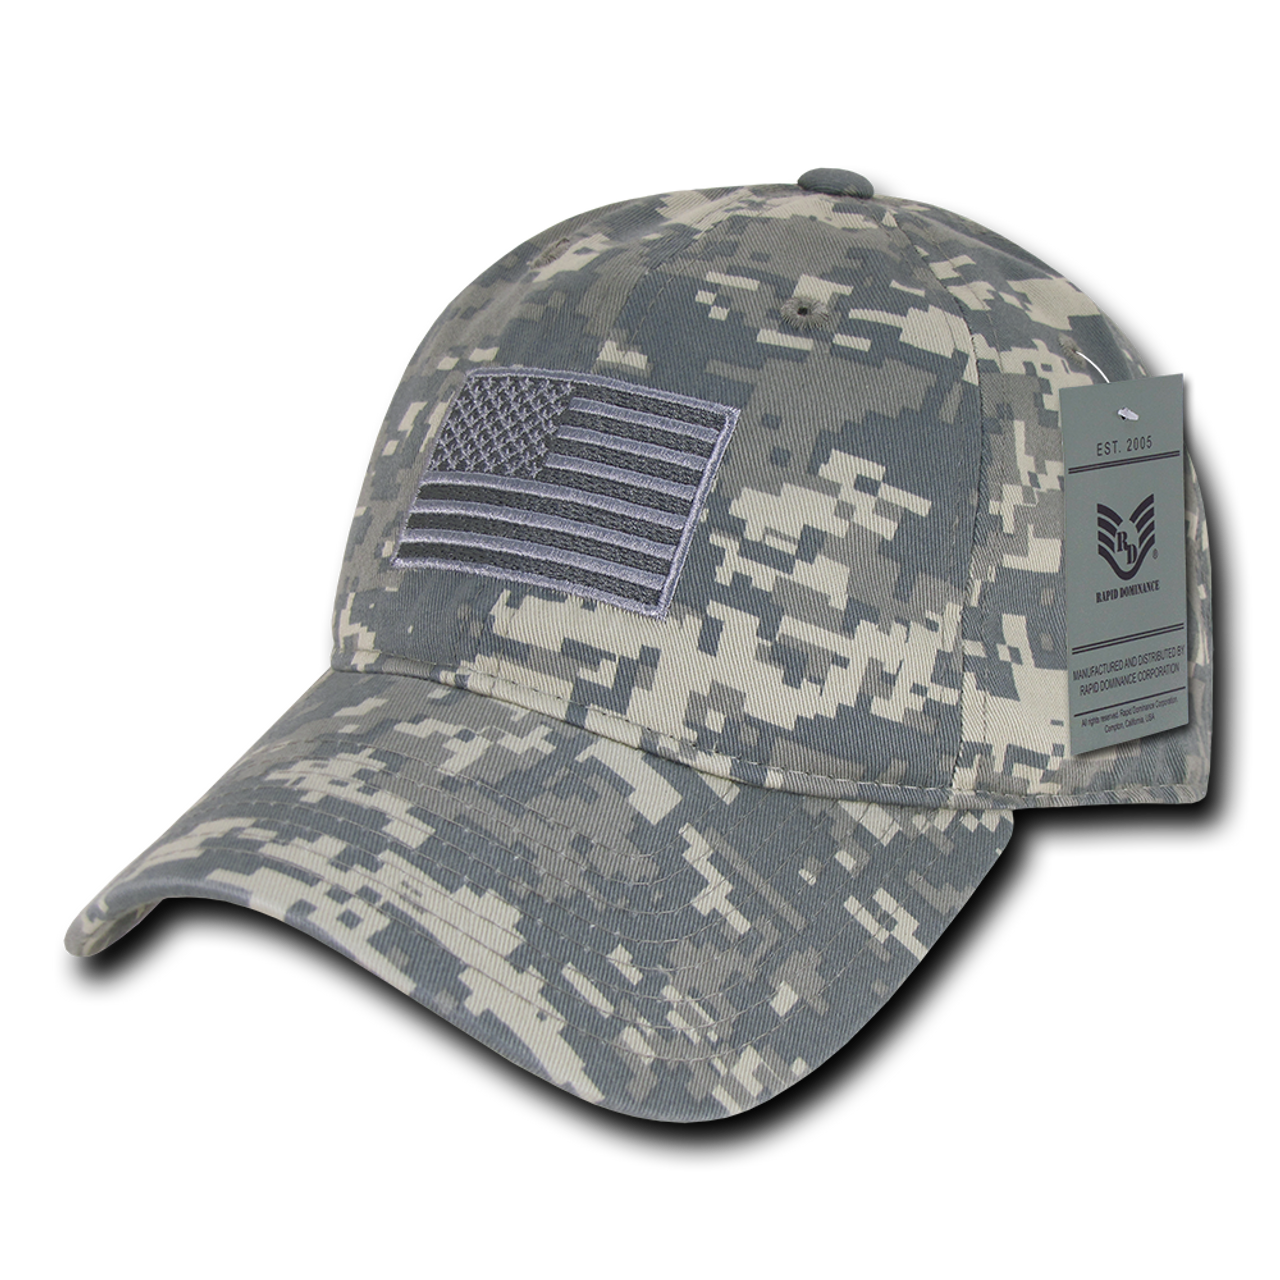 Tactical Operator Cap Flag Digital Camo - US Military Hats 5e49904ec9c